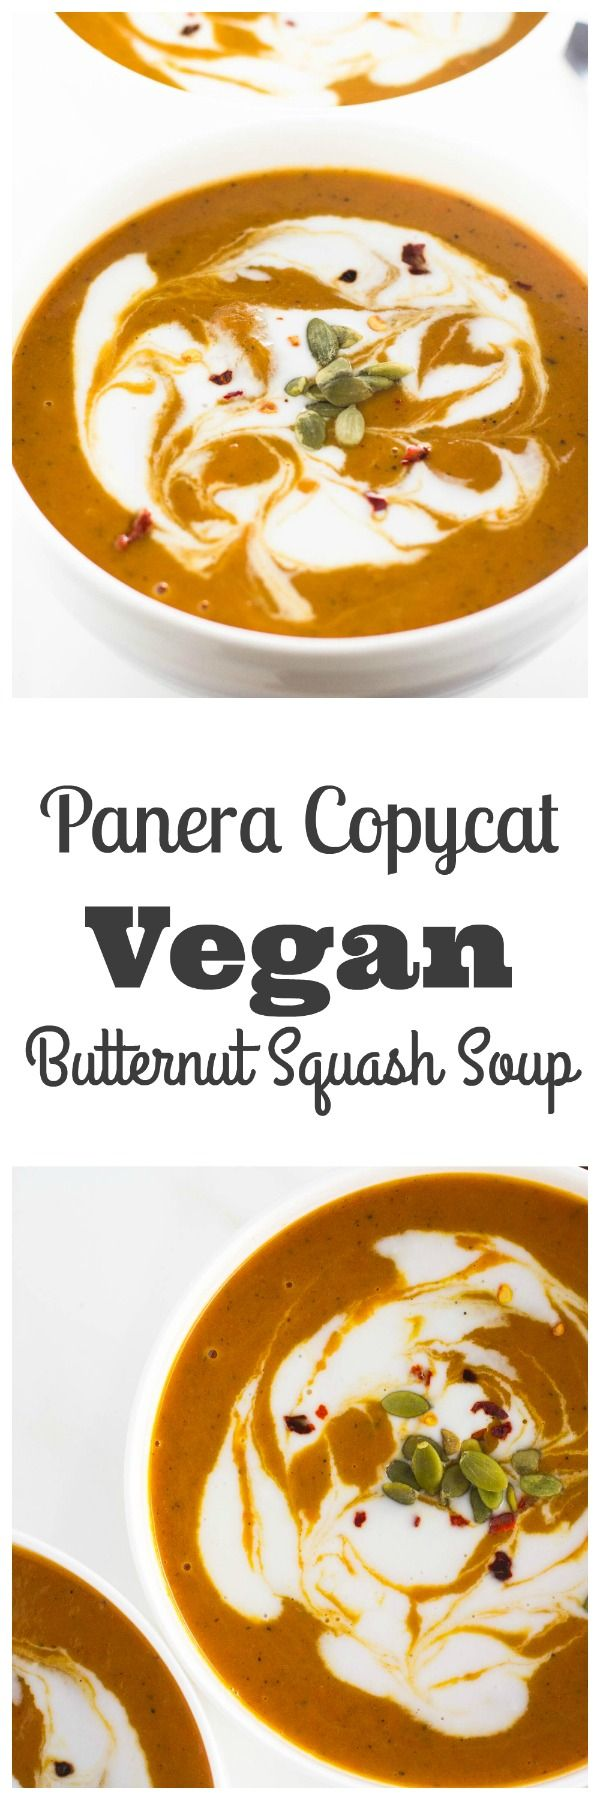 Buttenut squash is a fall favorite. Panera's butternut squash soup is deliciously decadent and full of flavor. Meet its rival! My vegan butternut squash soup is delicious and guilt free!